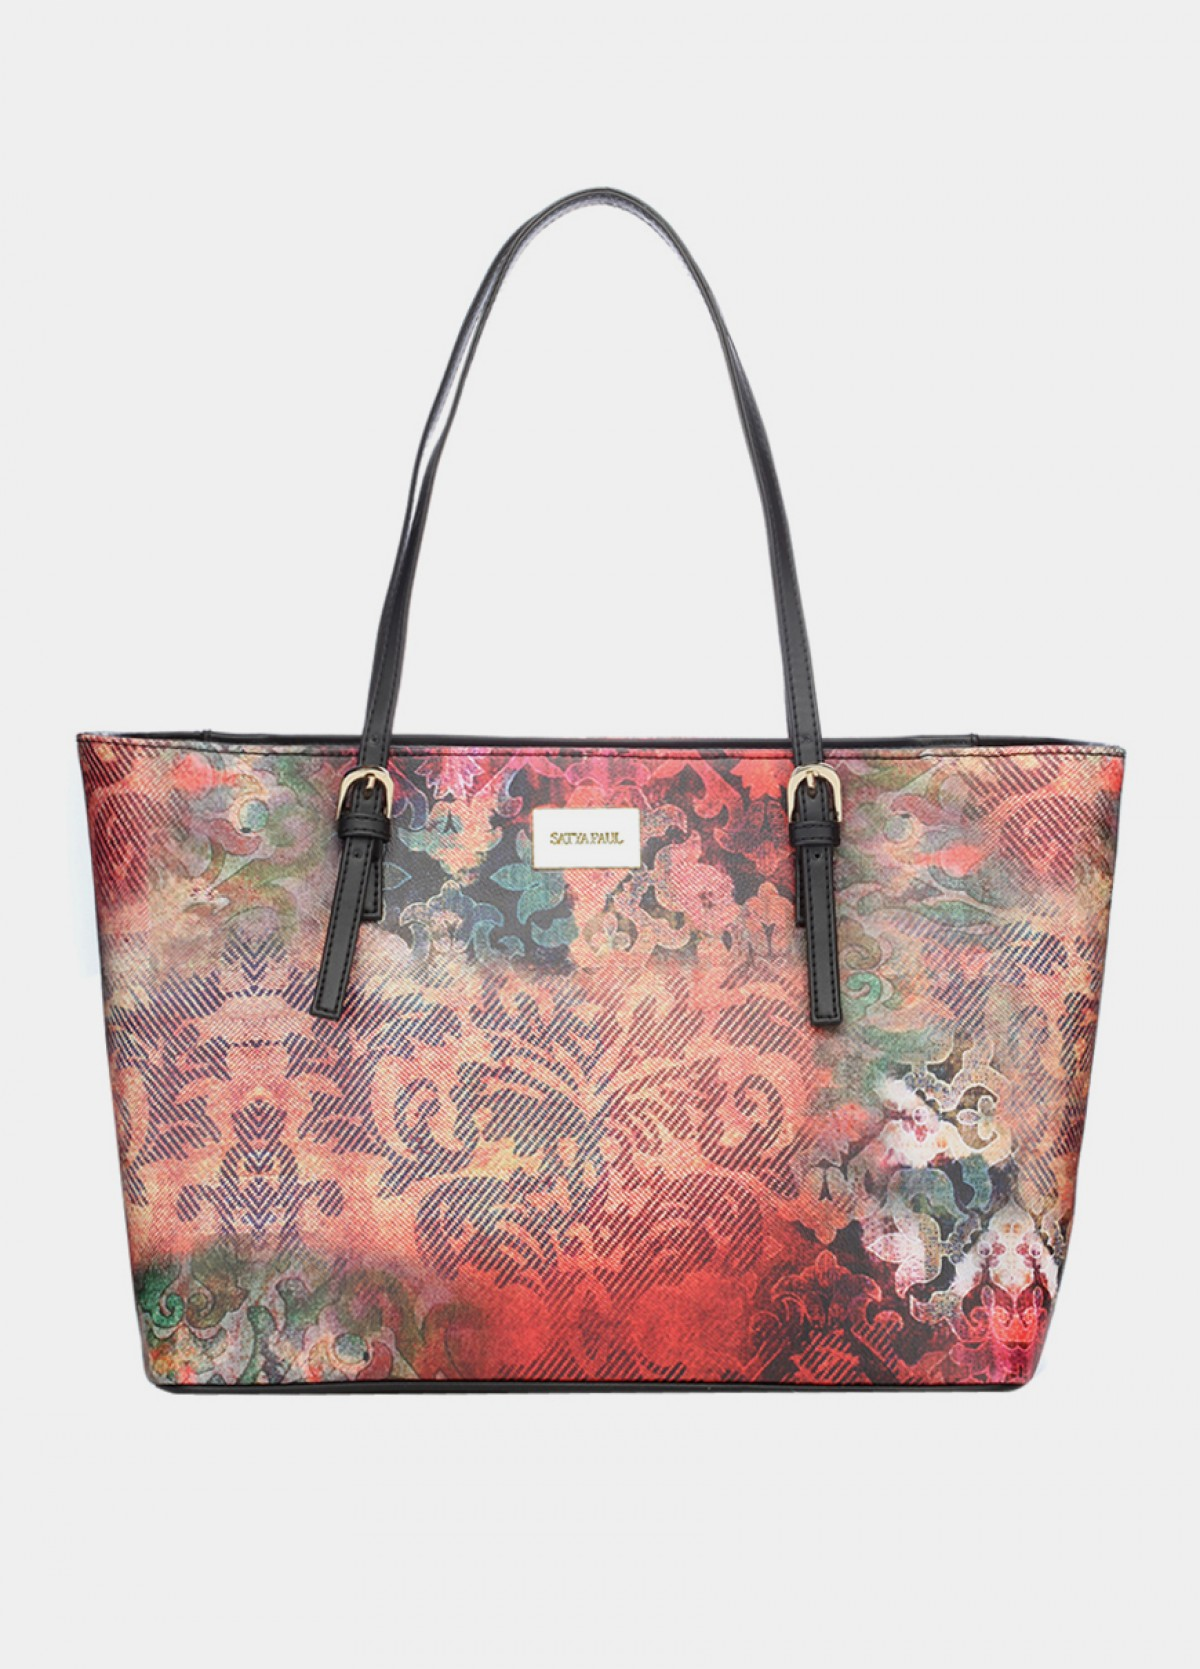 The Printed Tote